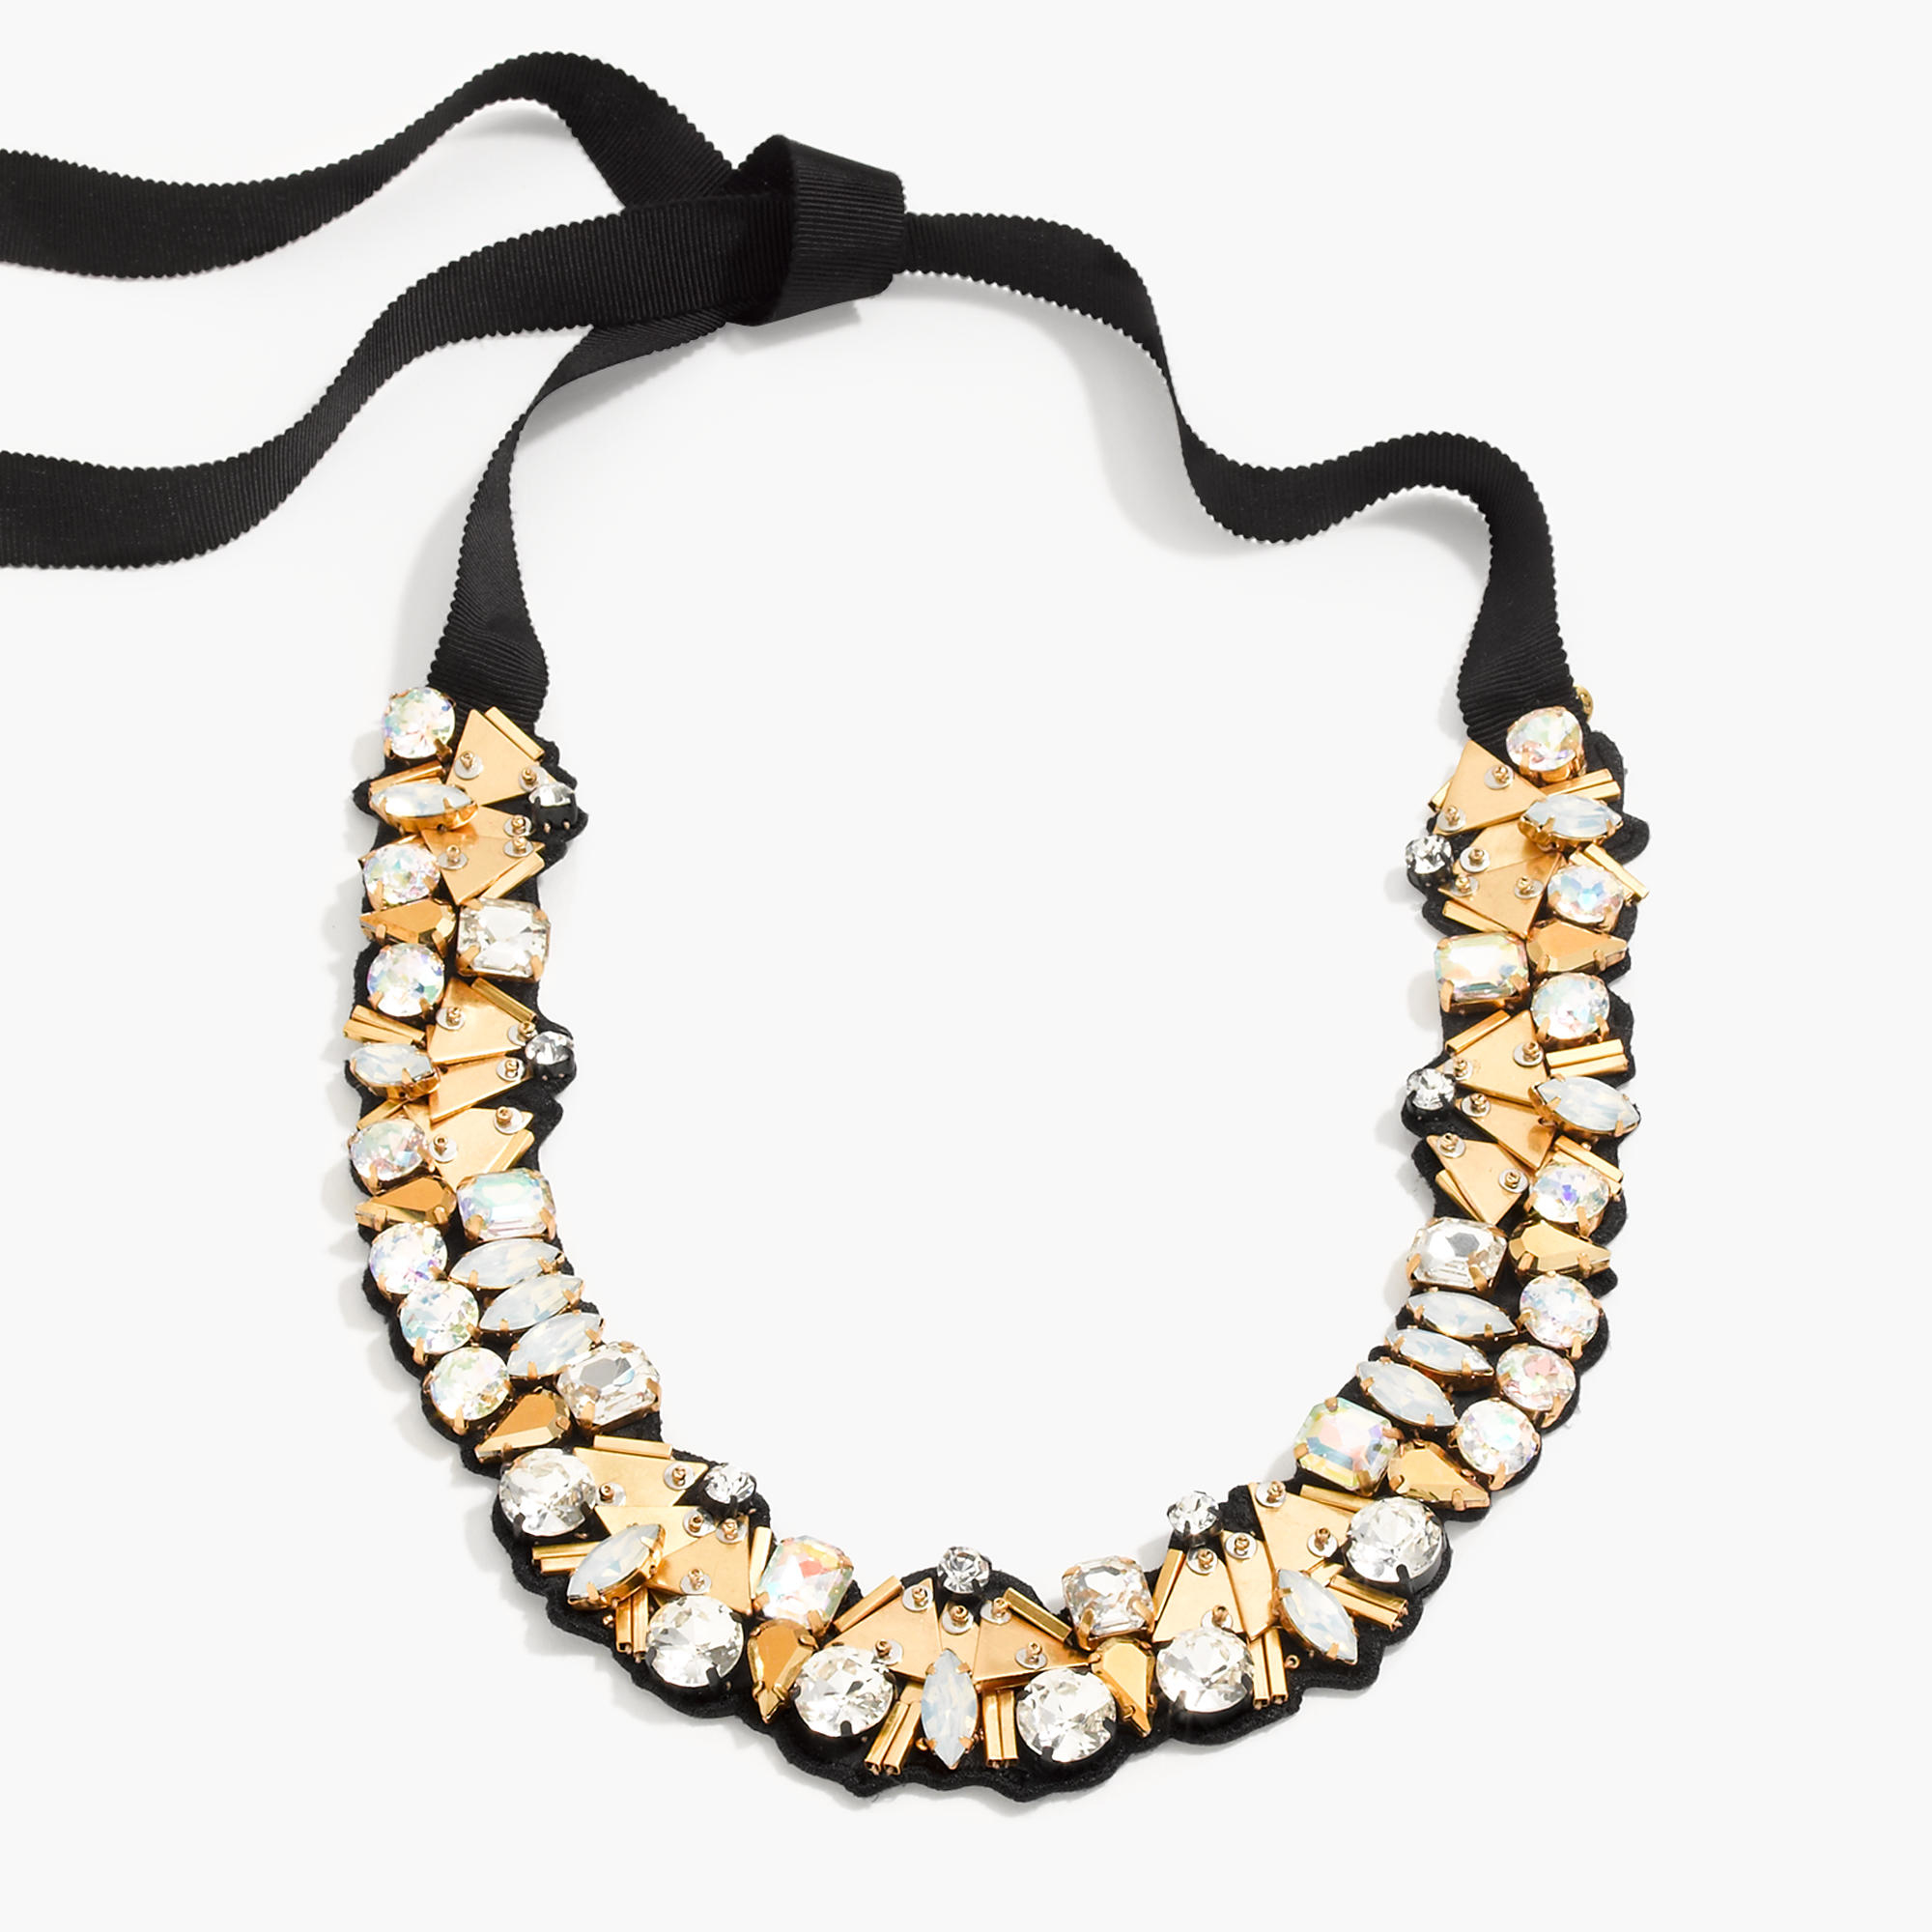 11c09ce6910 Lyst - J.Crew Bead And Crystal Fabric-backed Necklace in Metallic